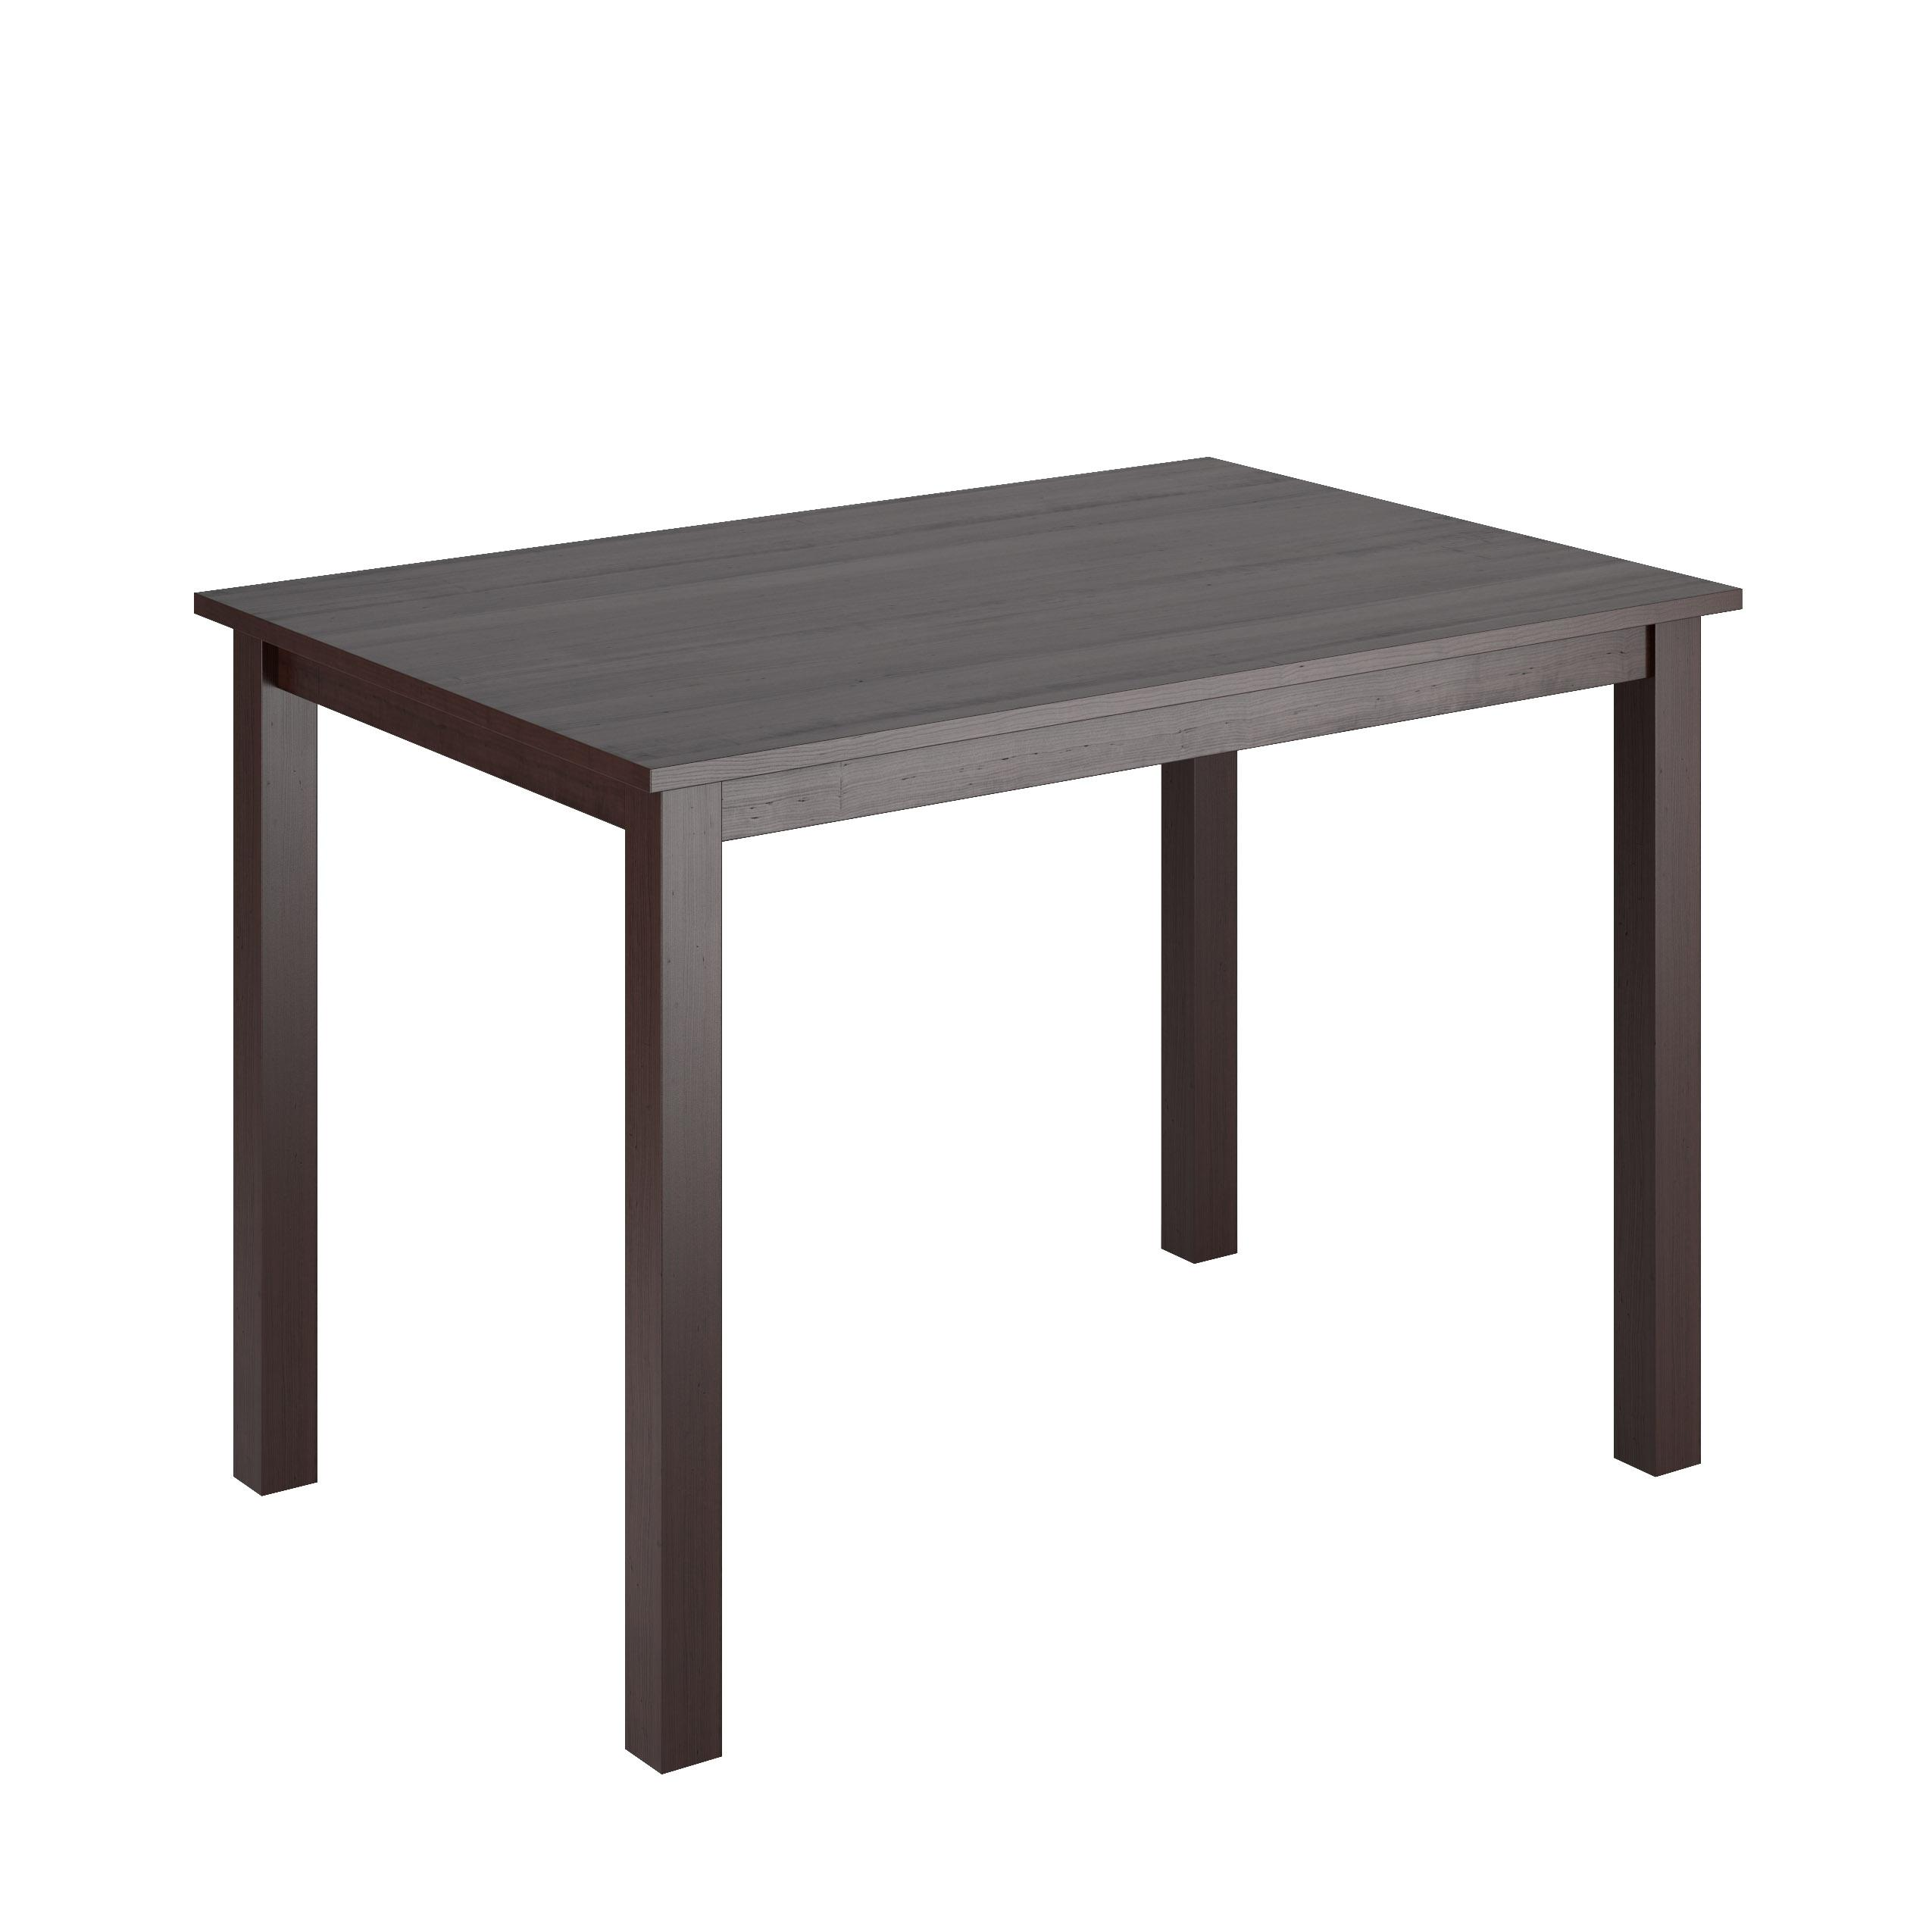 Amazoncom CorLiving DRGT Atwood Wide Stained Dining Table - 28 wide dining table